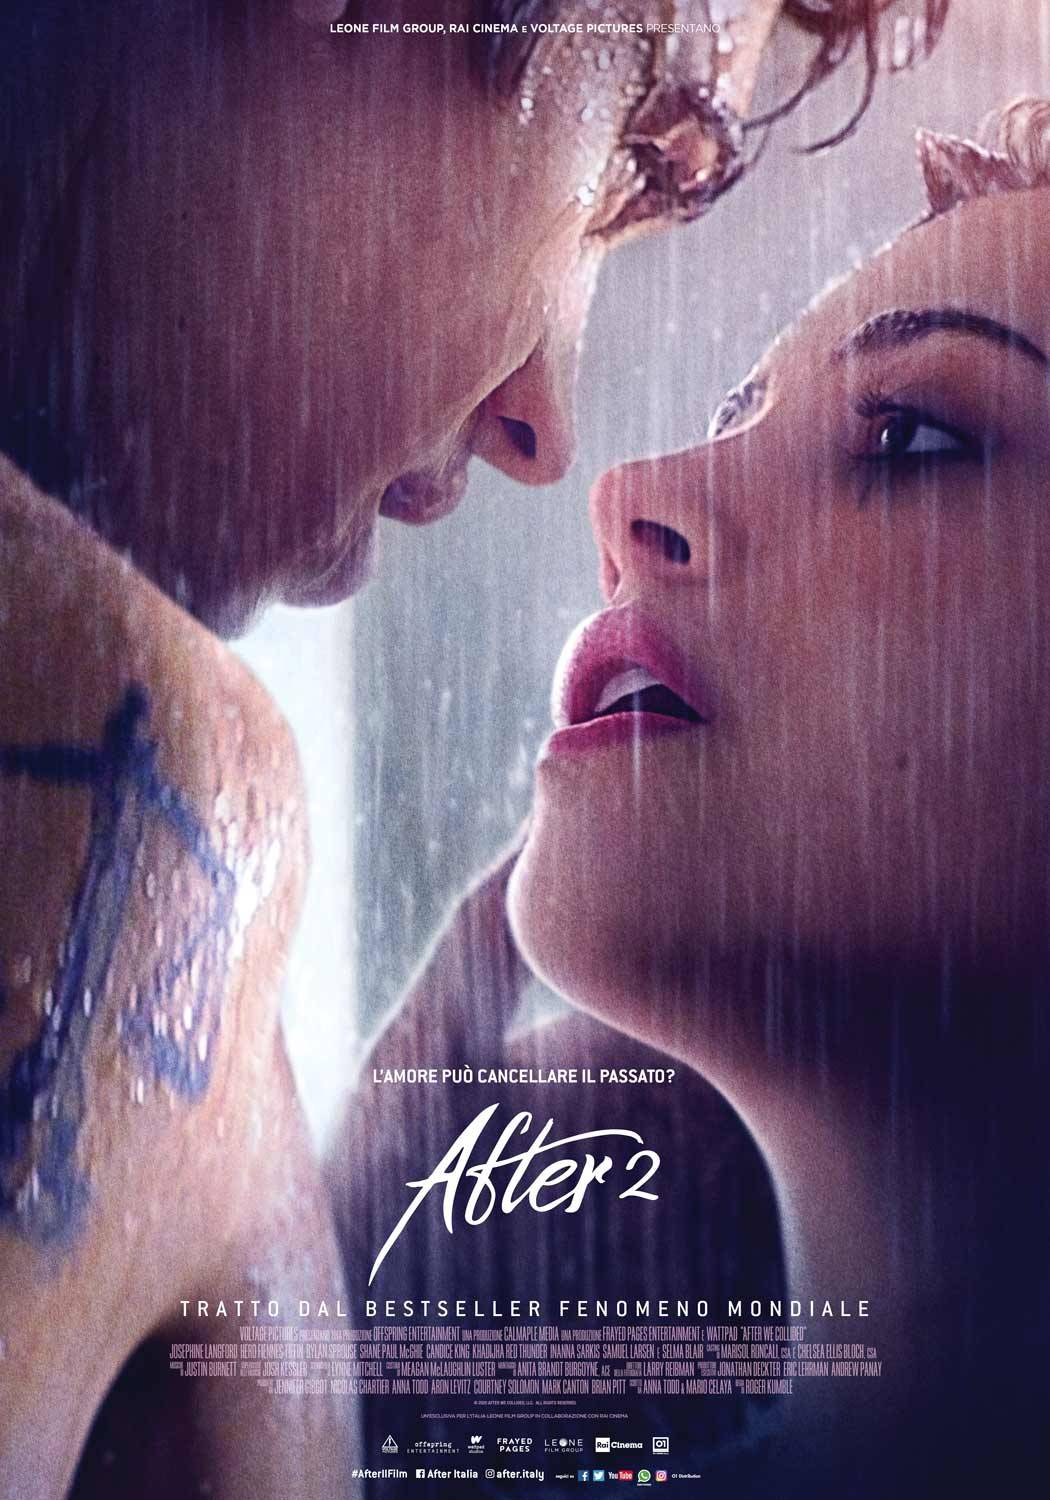 Youtube Film Complet Vf Romance : youtube, complet, romance, Regarder, After, Complet